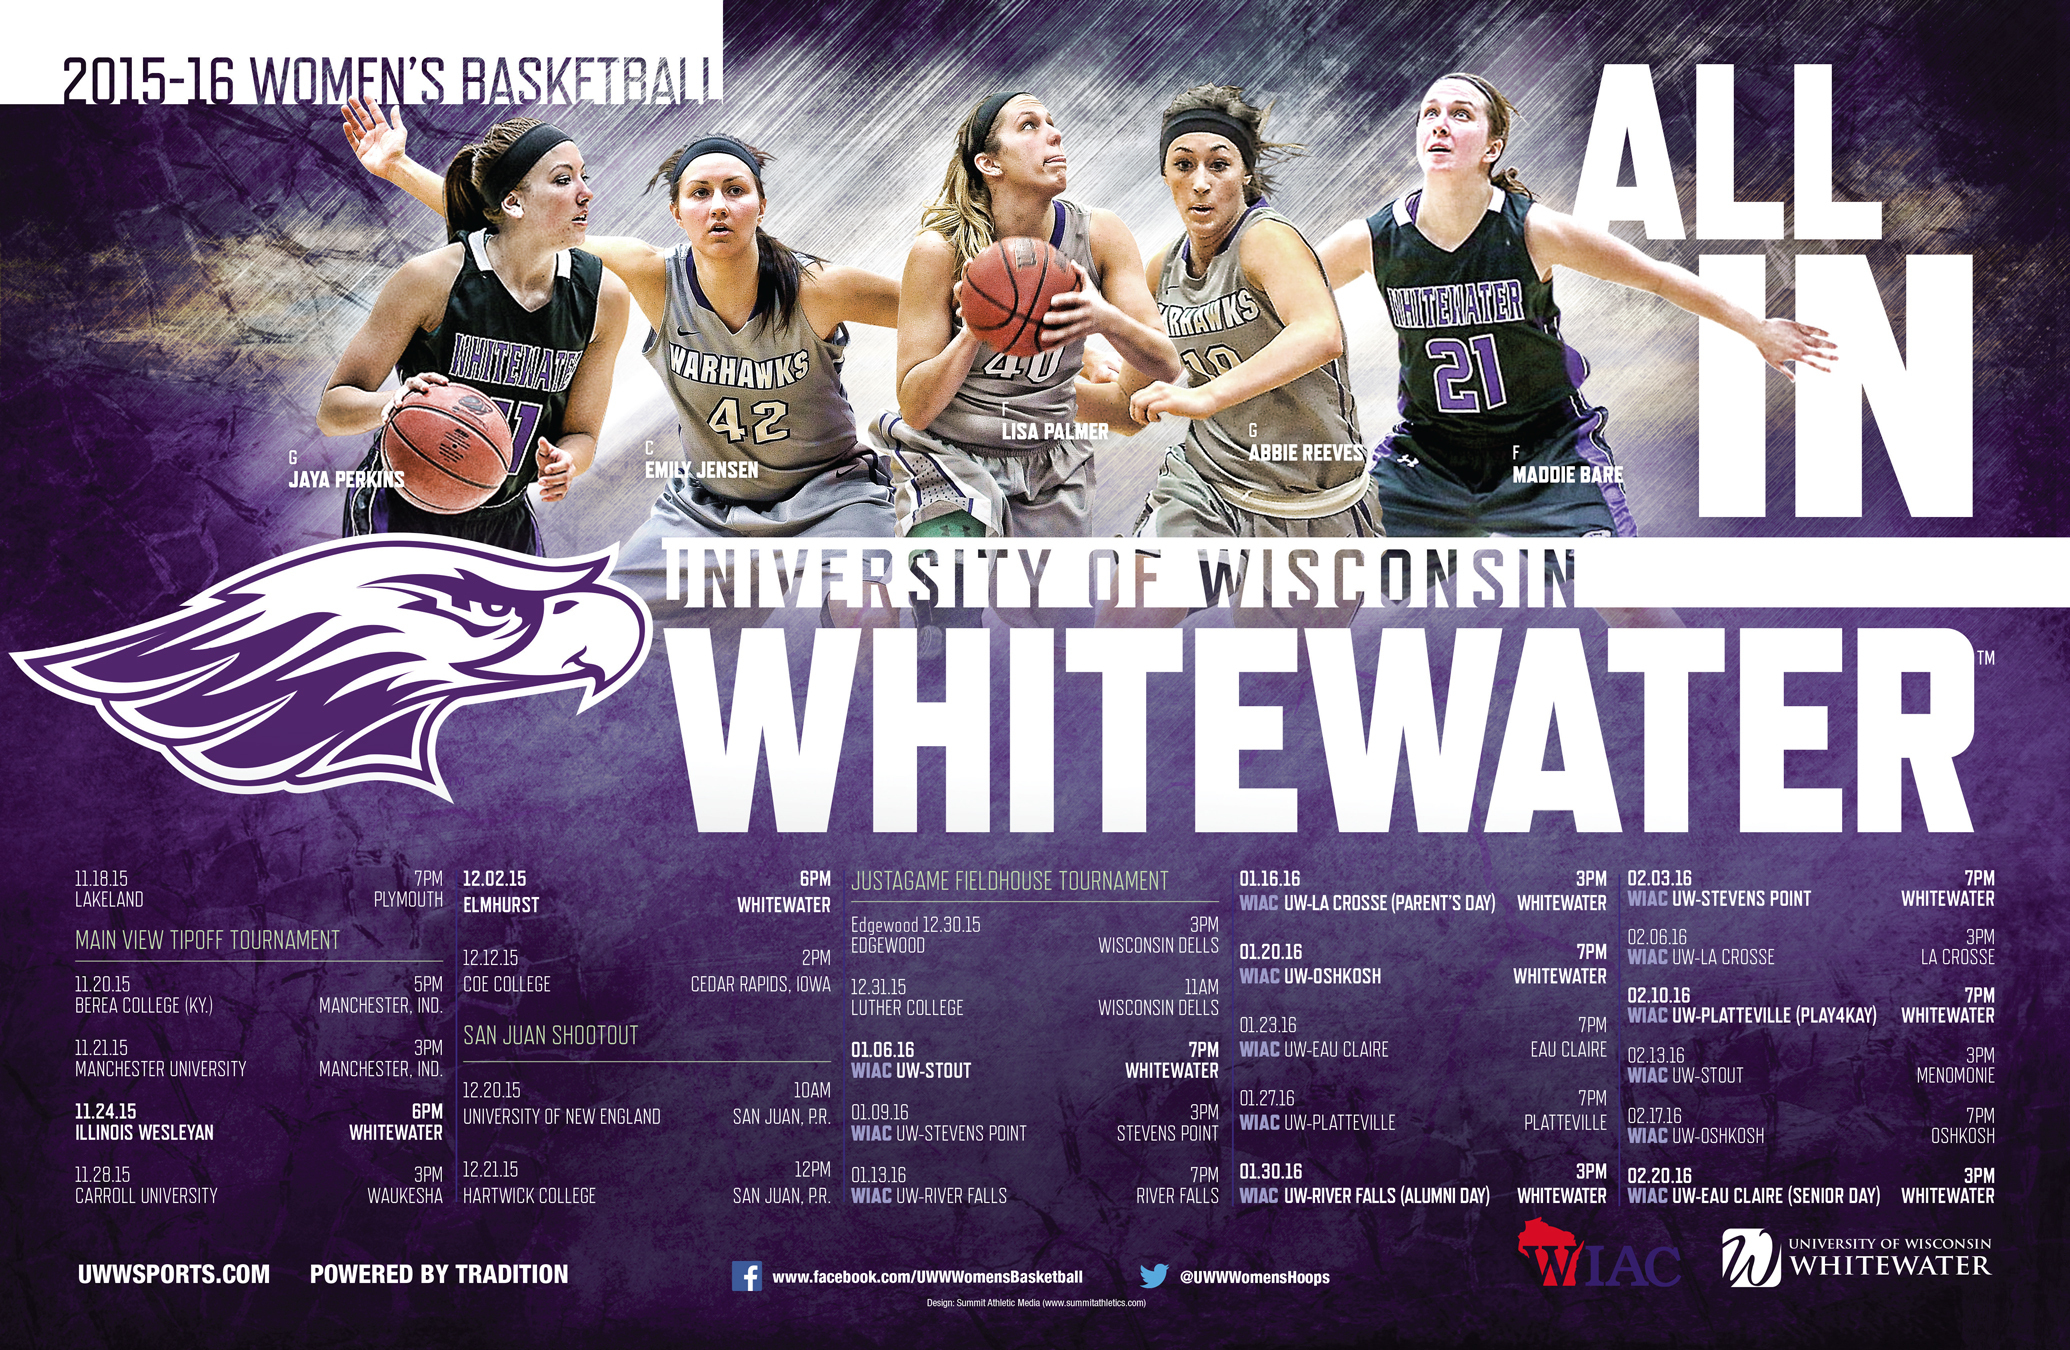 1447780631 2015 uw whitewater women's basketball poster final